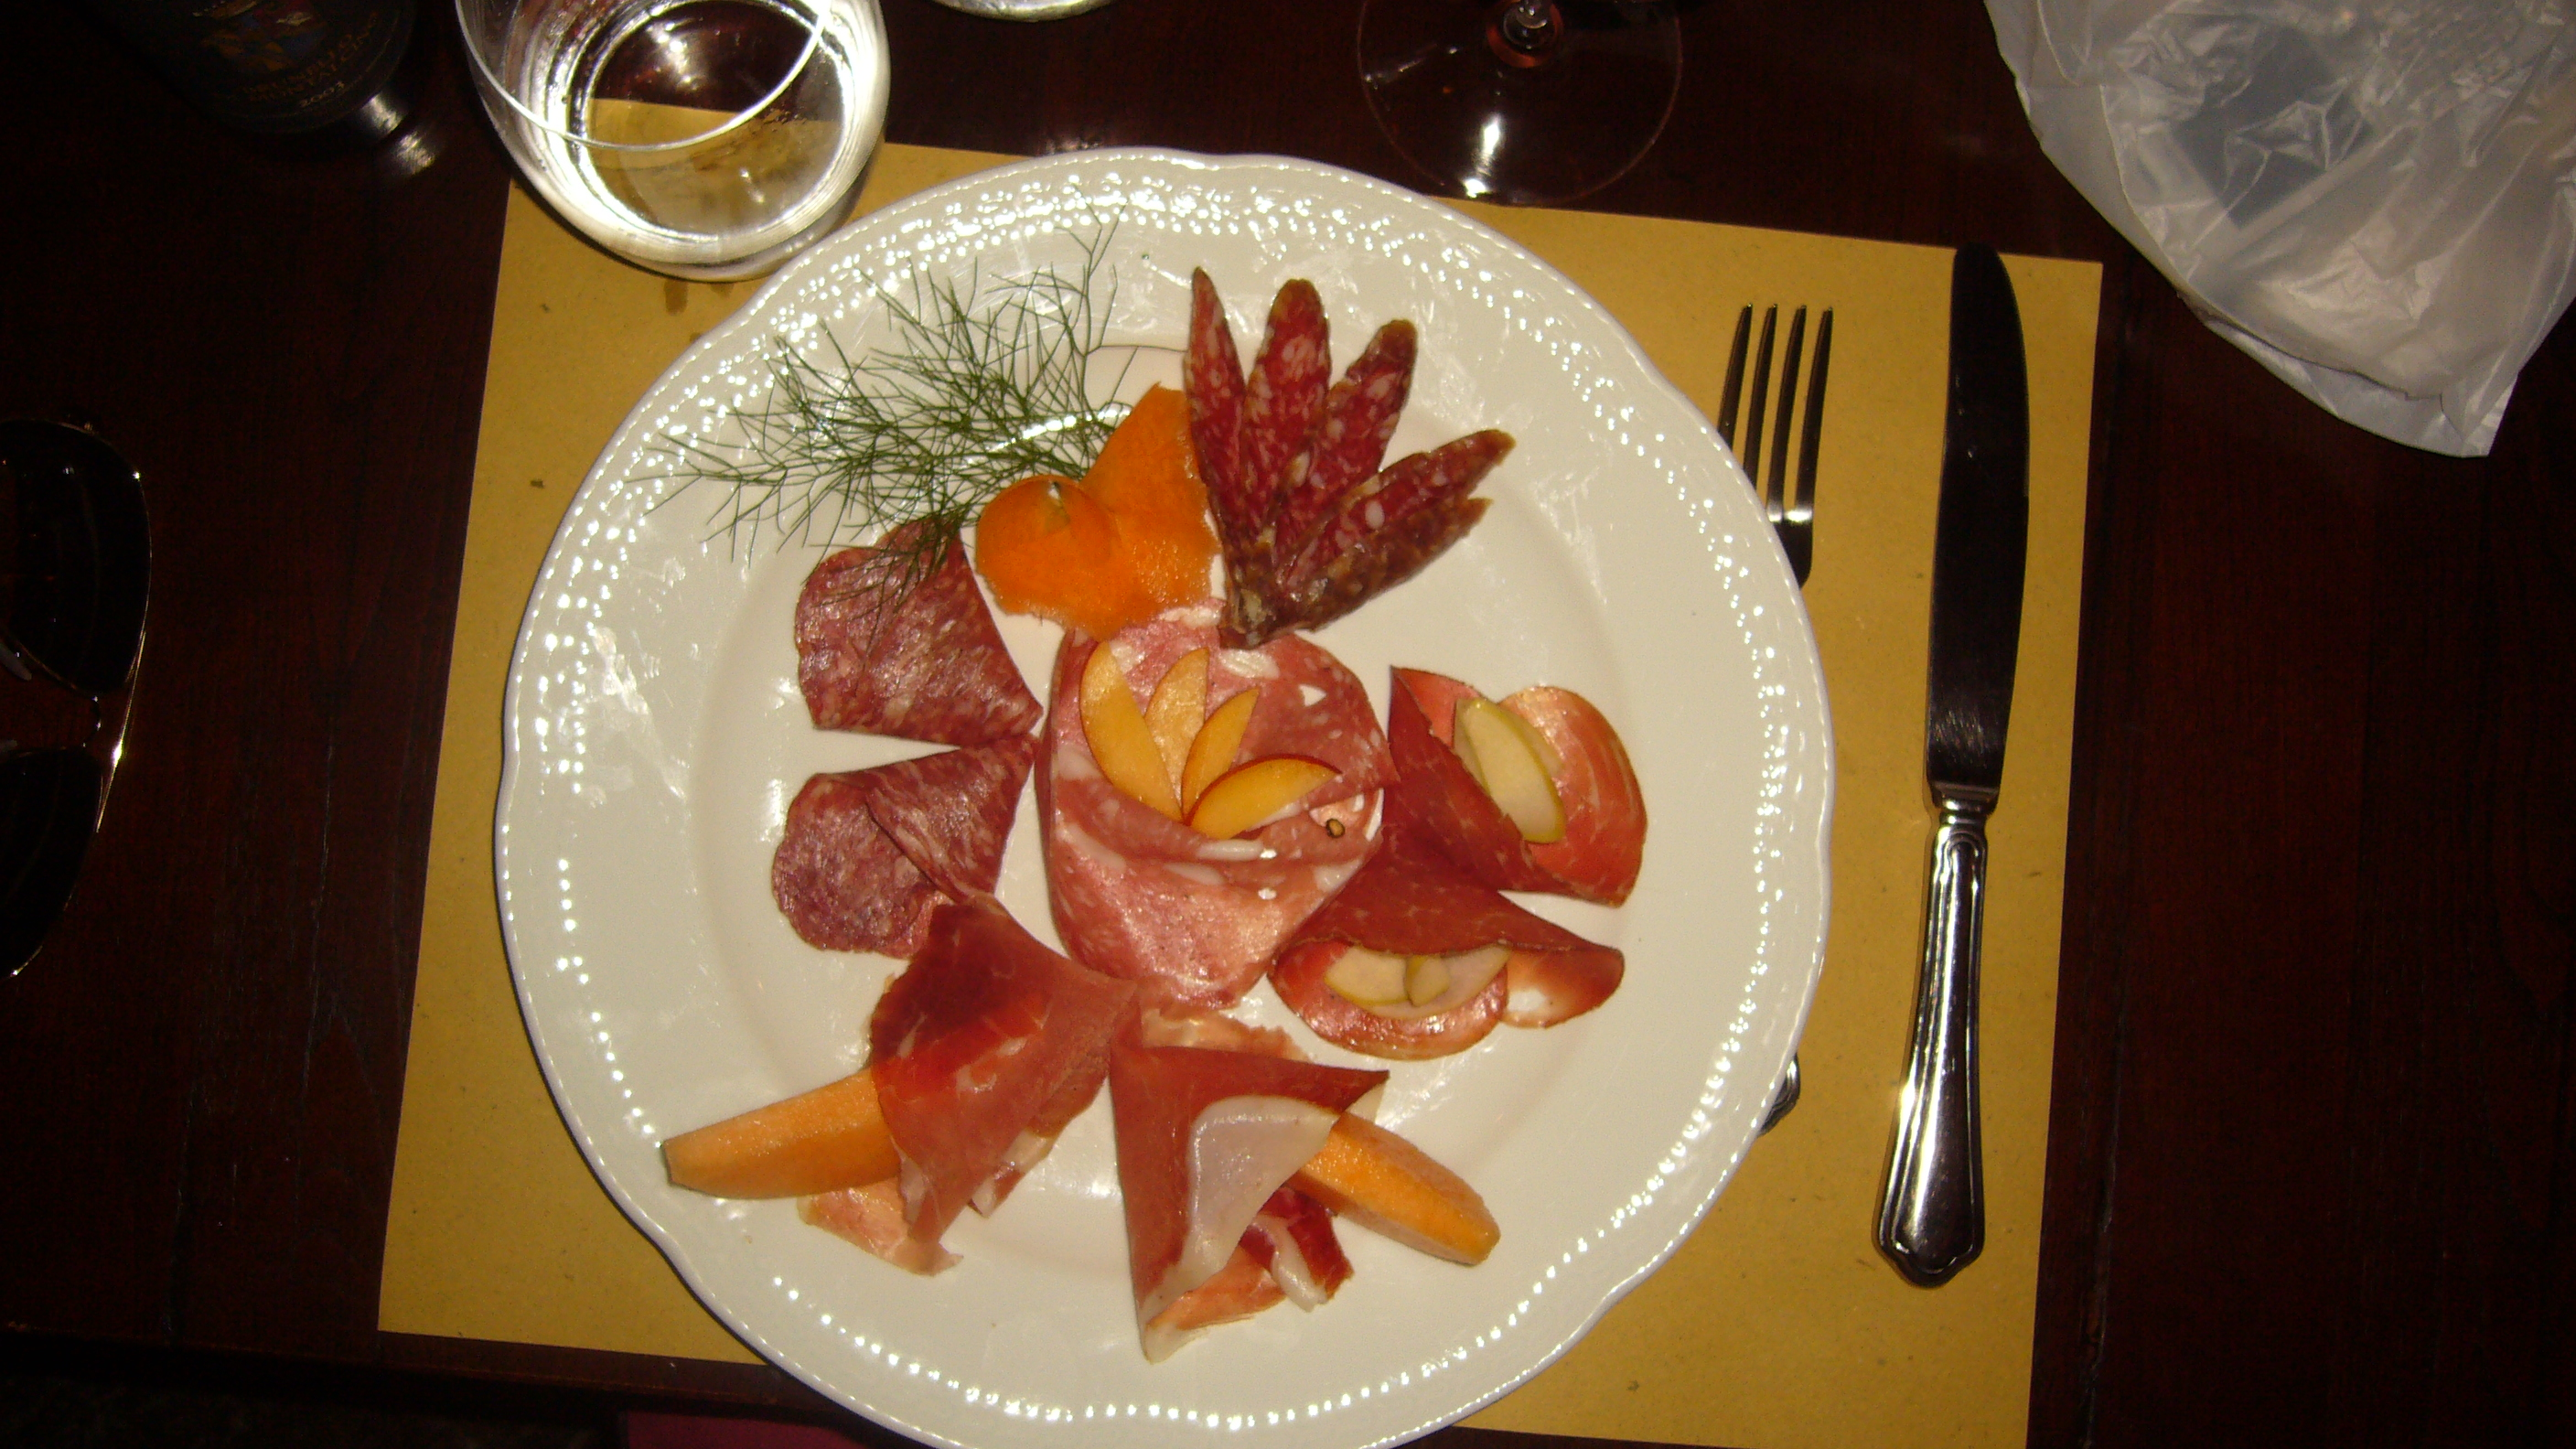 Cinghiale Paradise - wild boar sausage, prosciutto con melone, salame, finocciono with apricot, and bresola with apples.  You sure can't get this in the US.